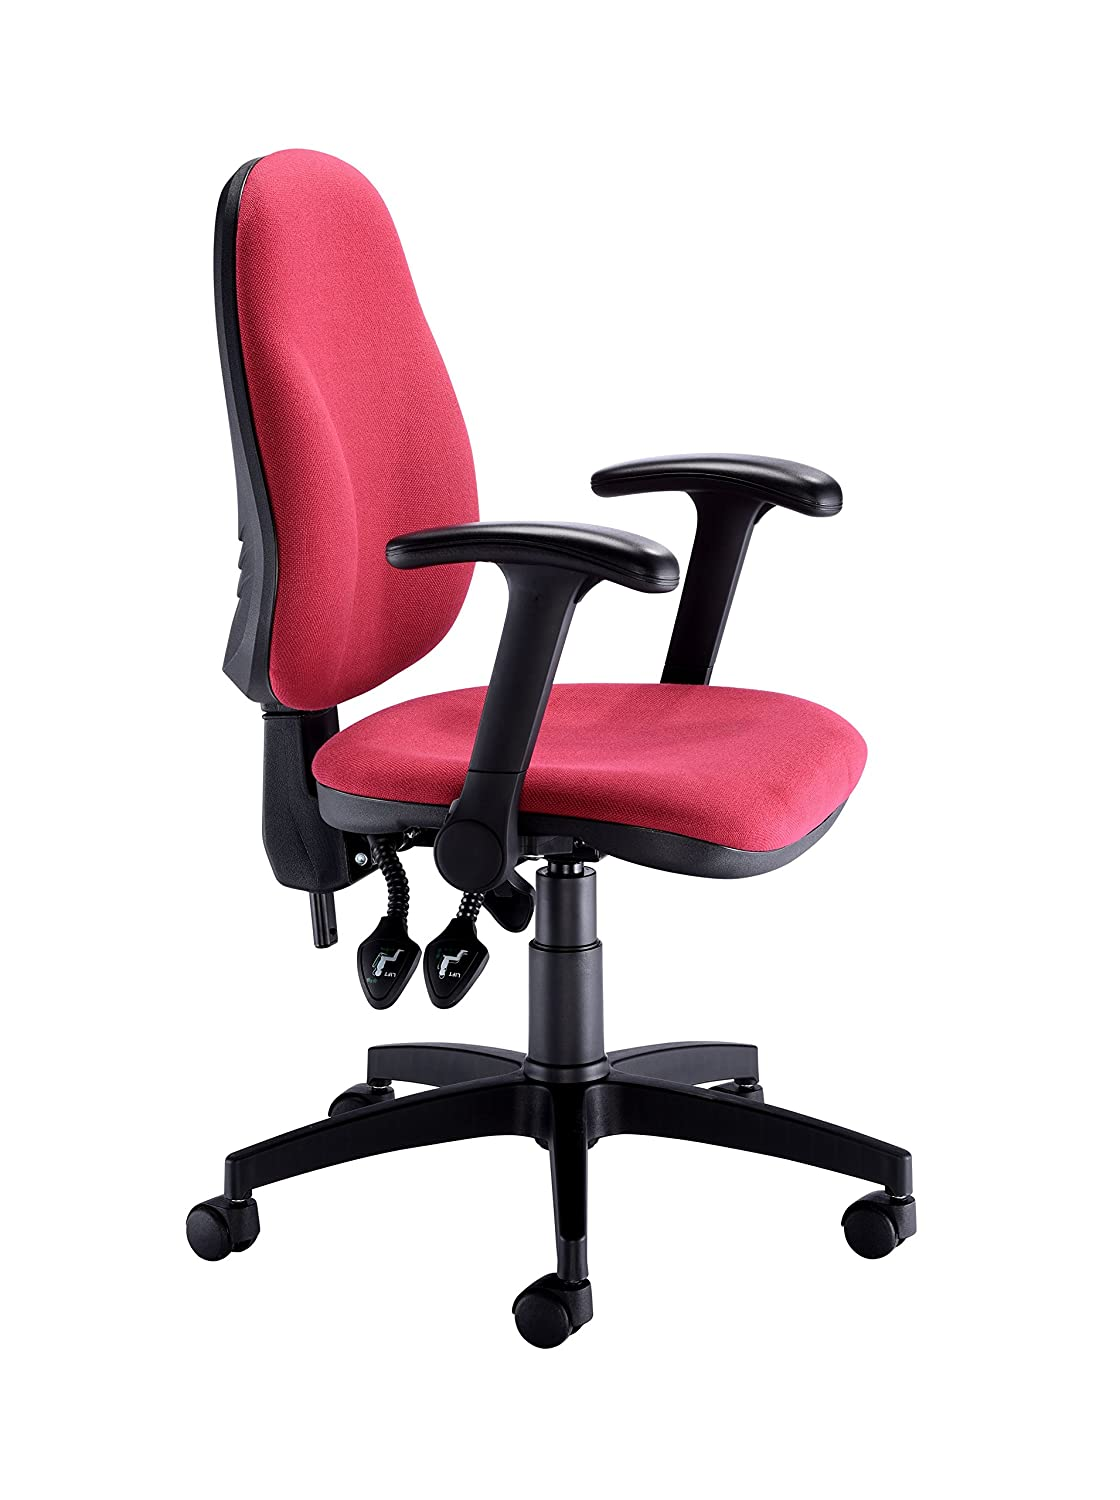 d25f2500b931 Royal Blue 61 x 61 x 97 cm OHS0068RB+AC1002 Fabric Office Hippo Deluxe High- Back Swivel Desk Chair ...